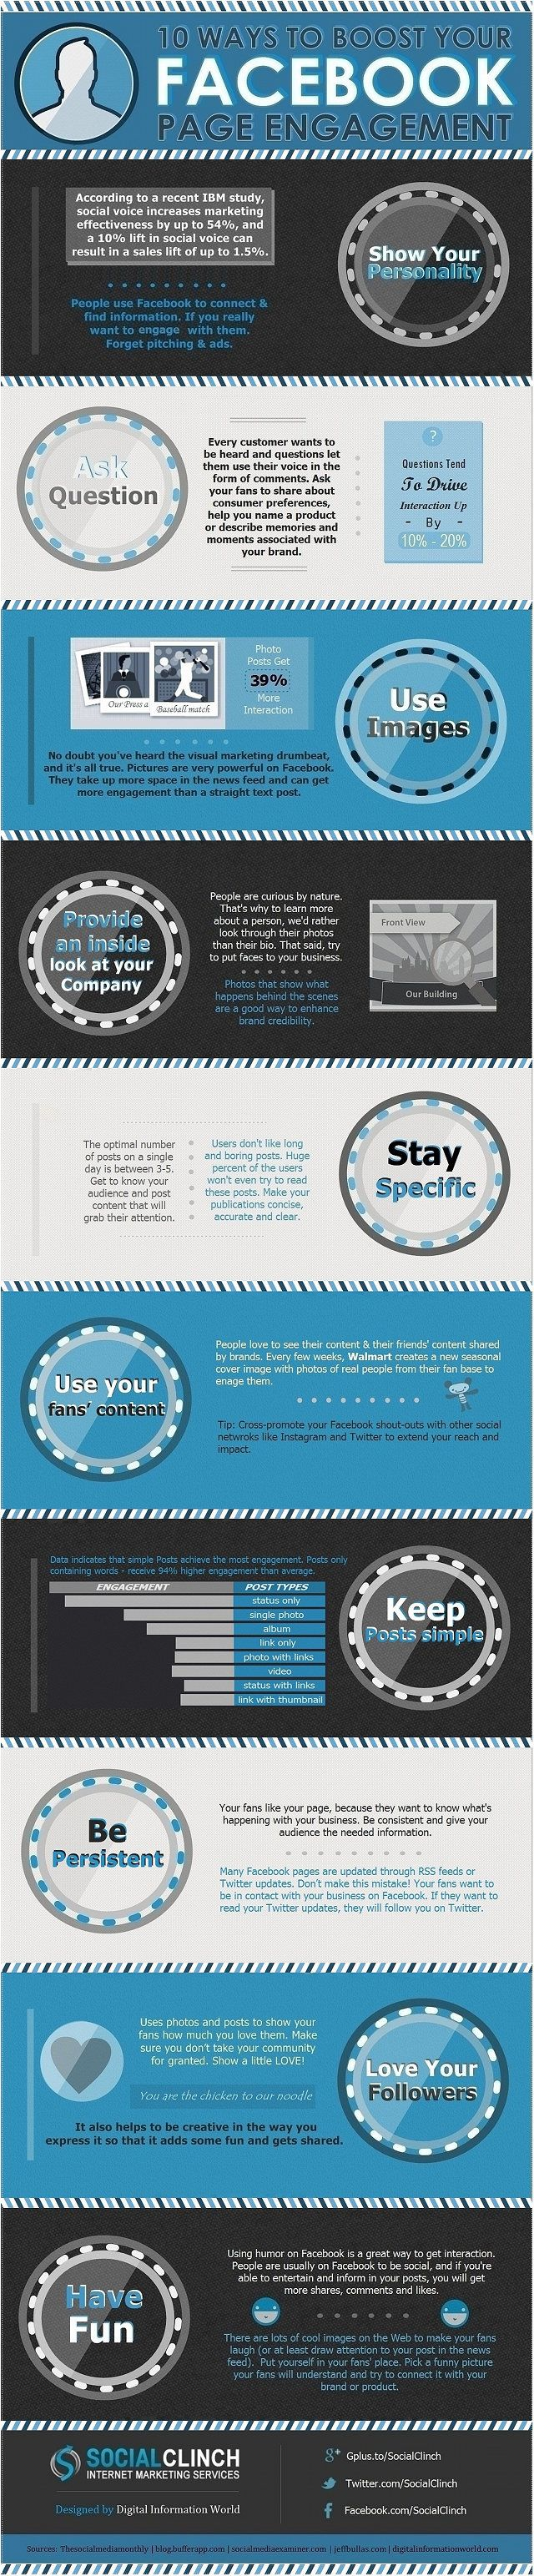 10-Ways-To-Boost-Your-Facebook-Page-Engagement-infographic-infographic -- Can always use this reminder!